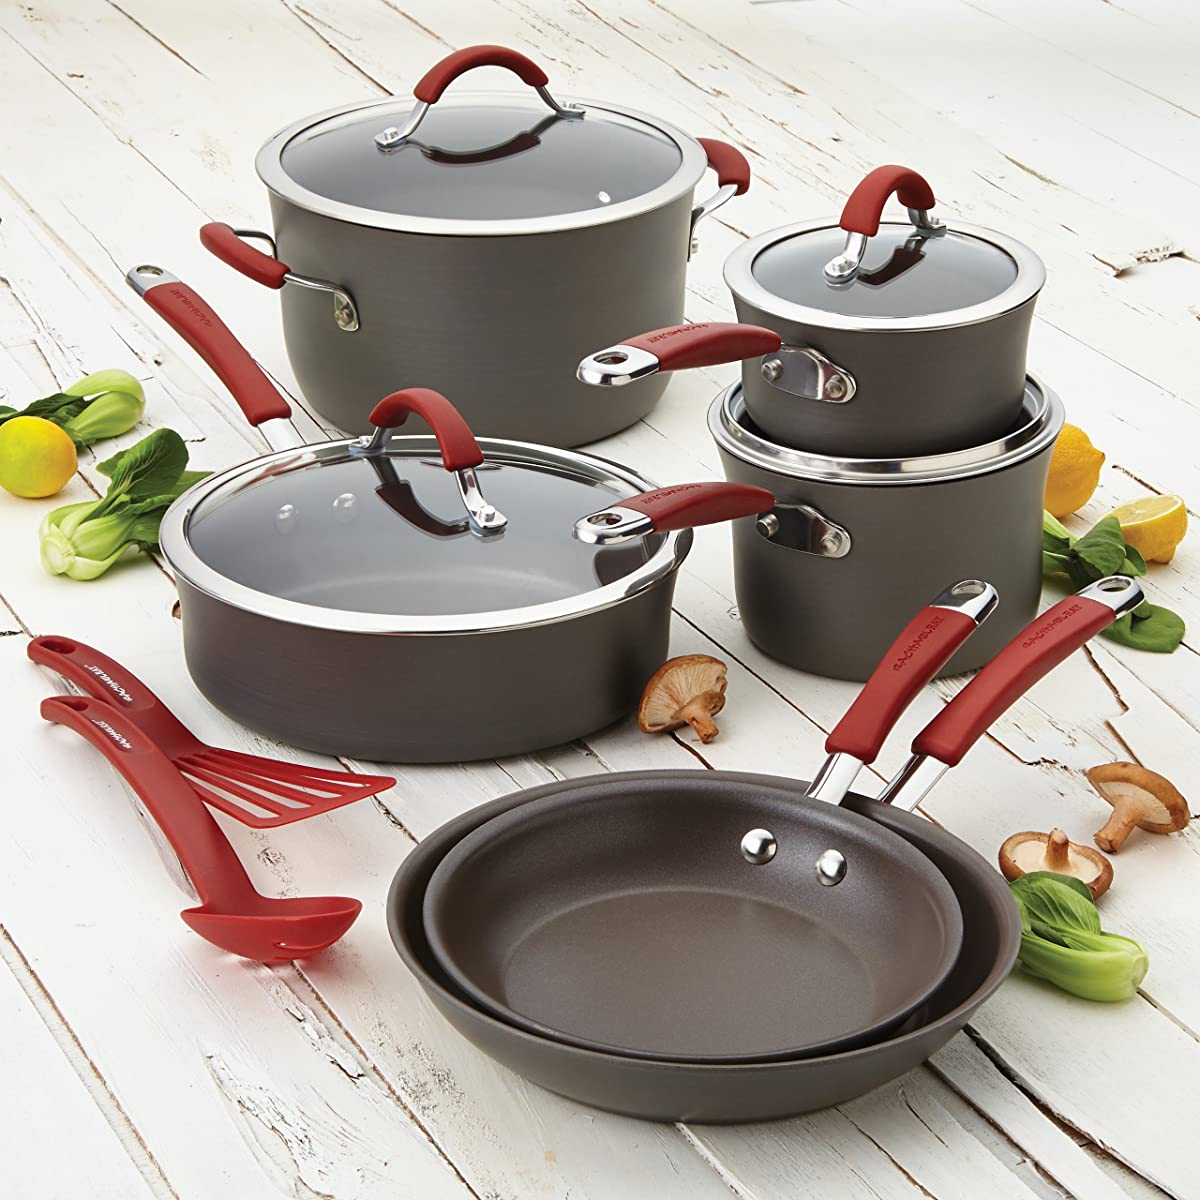 Cucina A Gas Amazon Best Hard Anodized Cookware Set 2019 Top 5 Picks Reviews